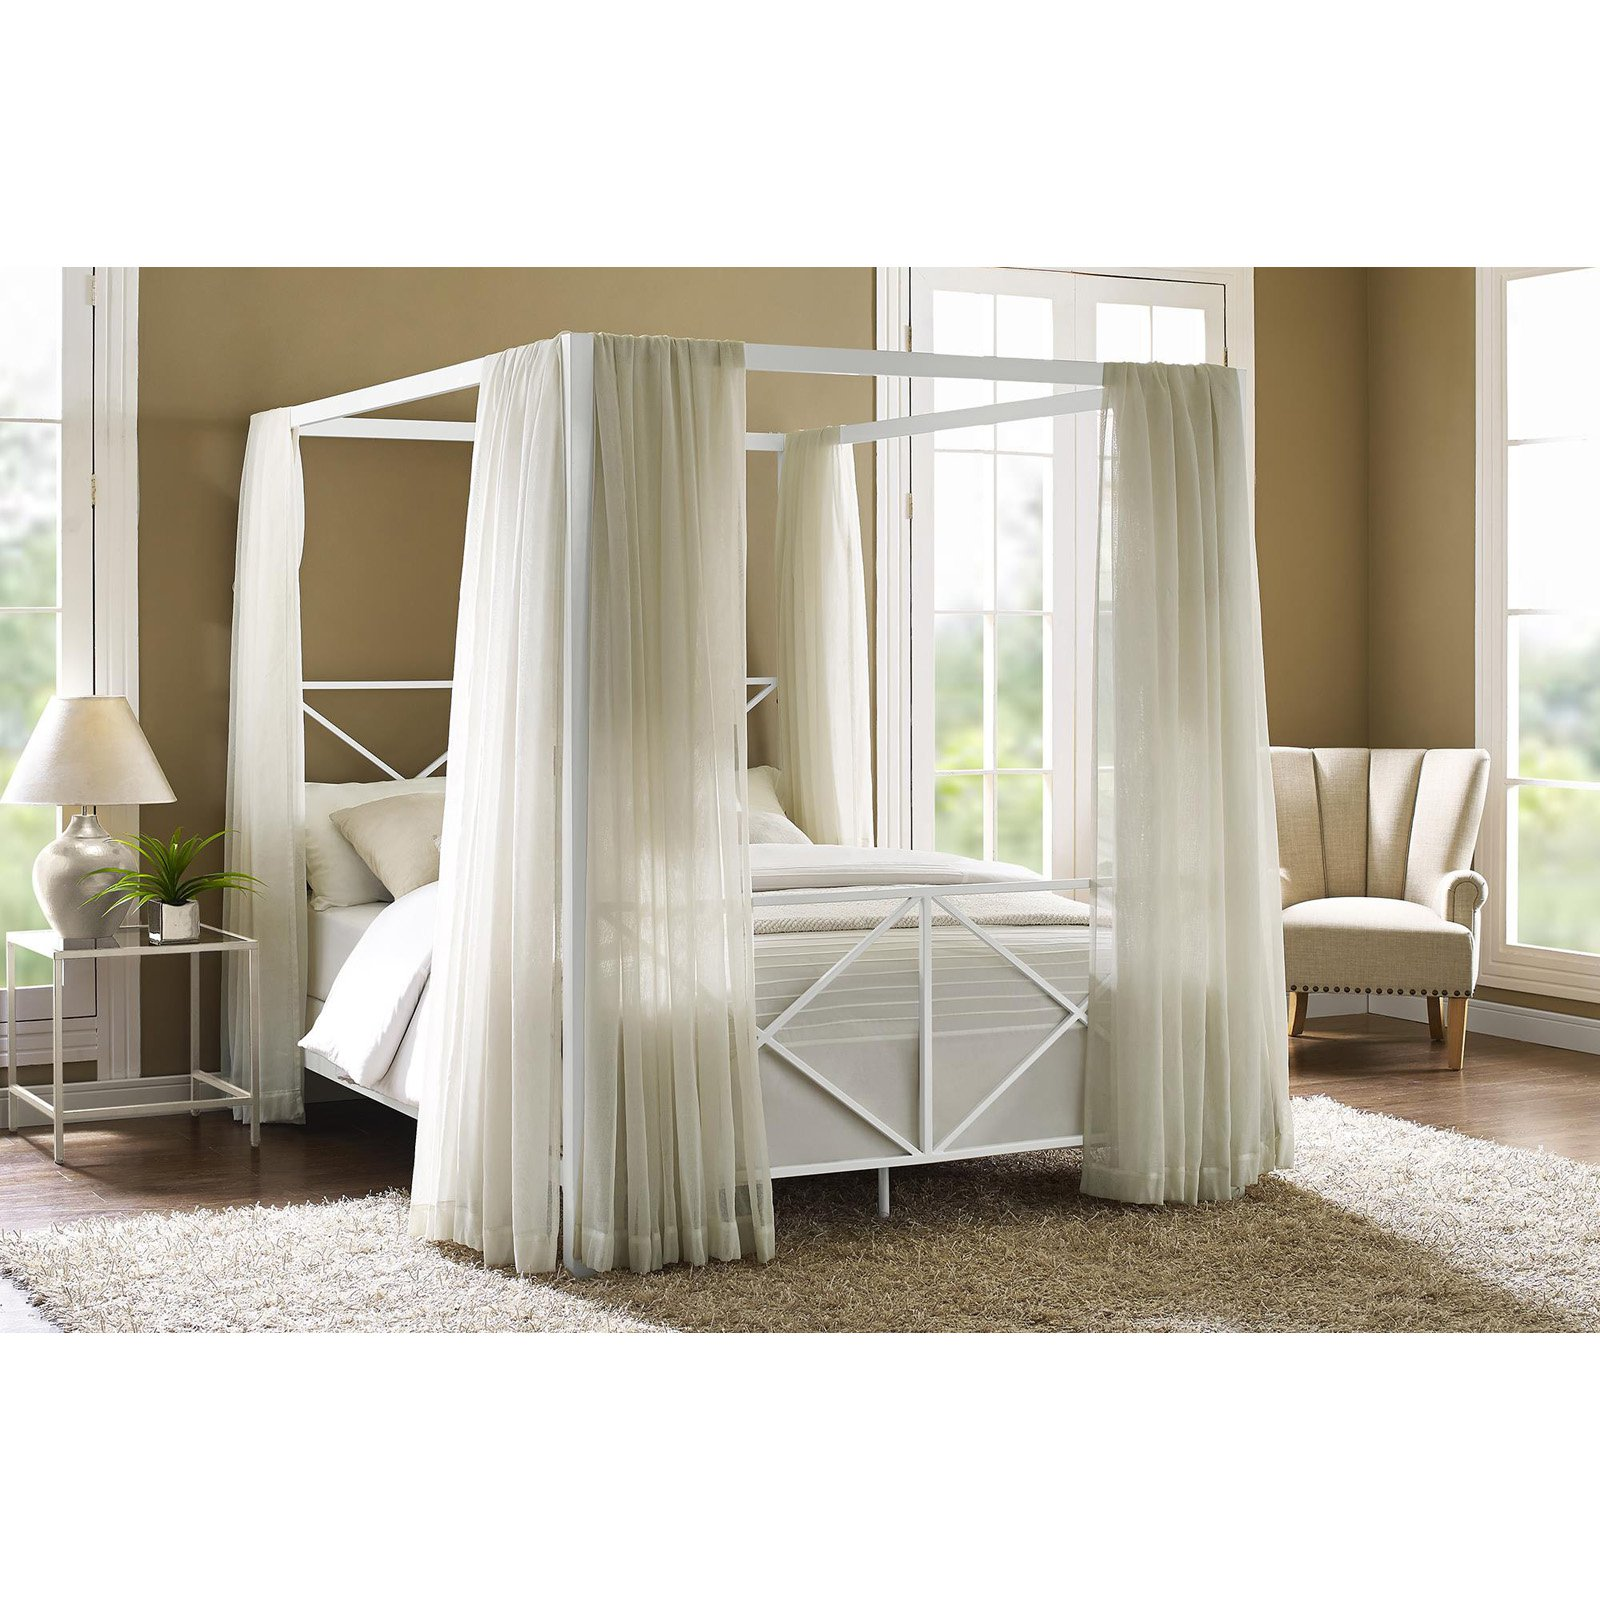 Dhp Rosedale Metal Canopy Bed Multiple Sizes Colors